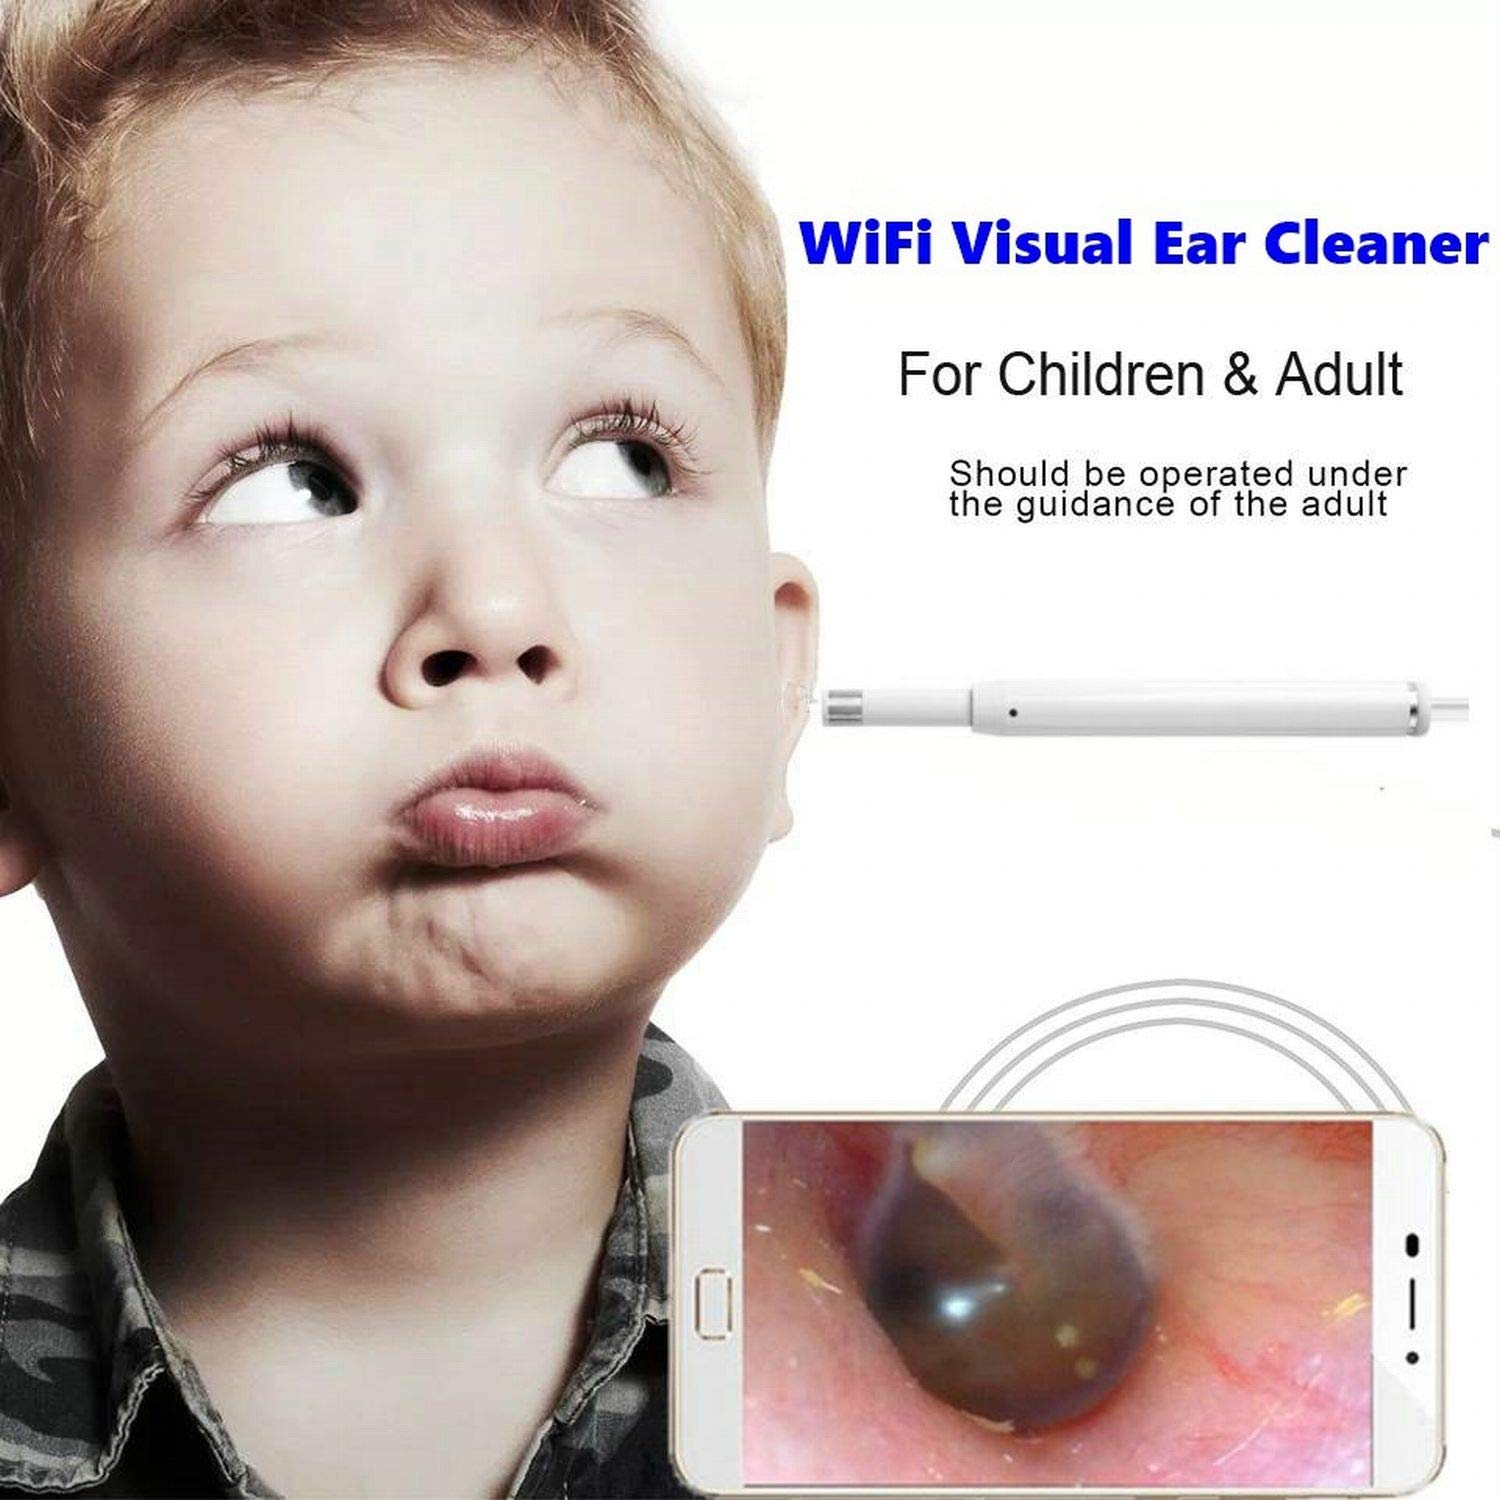 ICARINUS Portable WiFi Visual Ear Cleaner,Earwax Removal Tool Kit,Ear Wax Cleaner,Earwax Remover Soft Prevent Ear Pick Clean Tools Set for Adults Kids